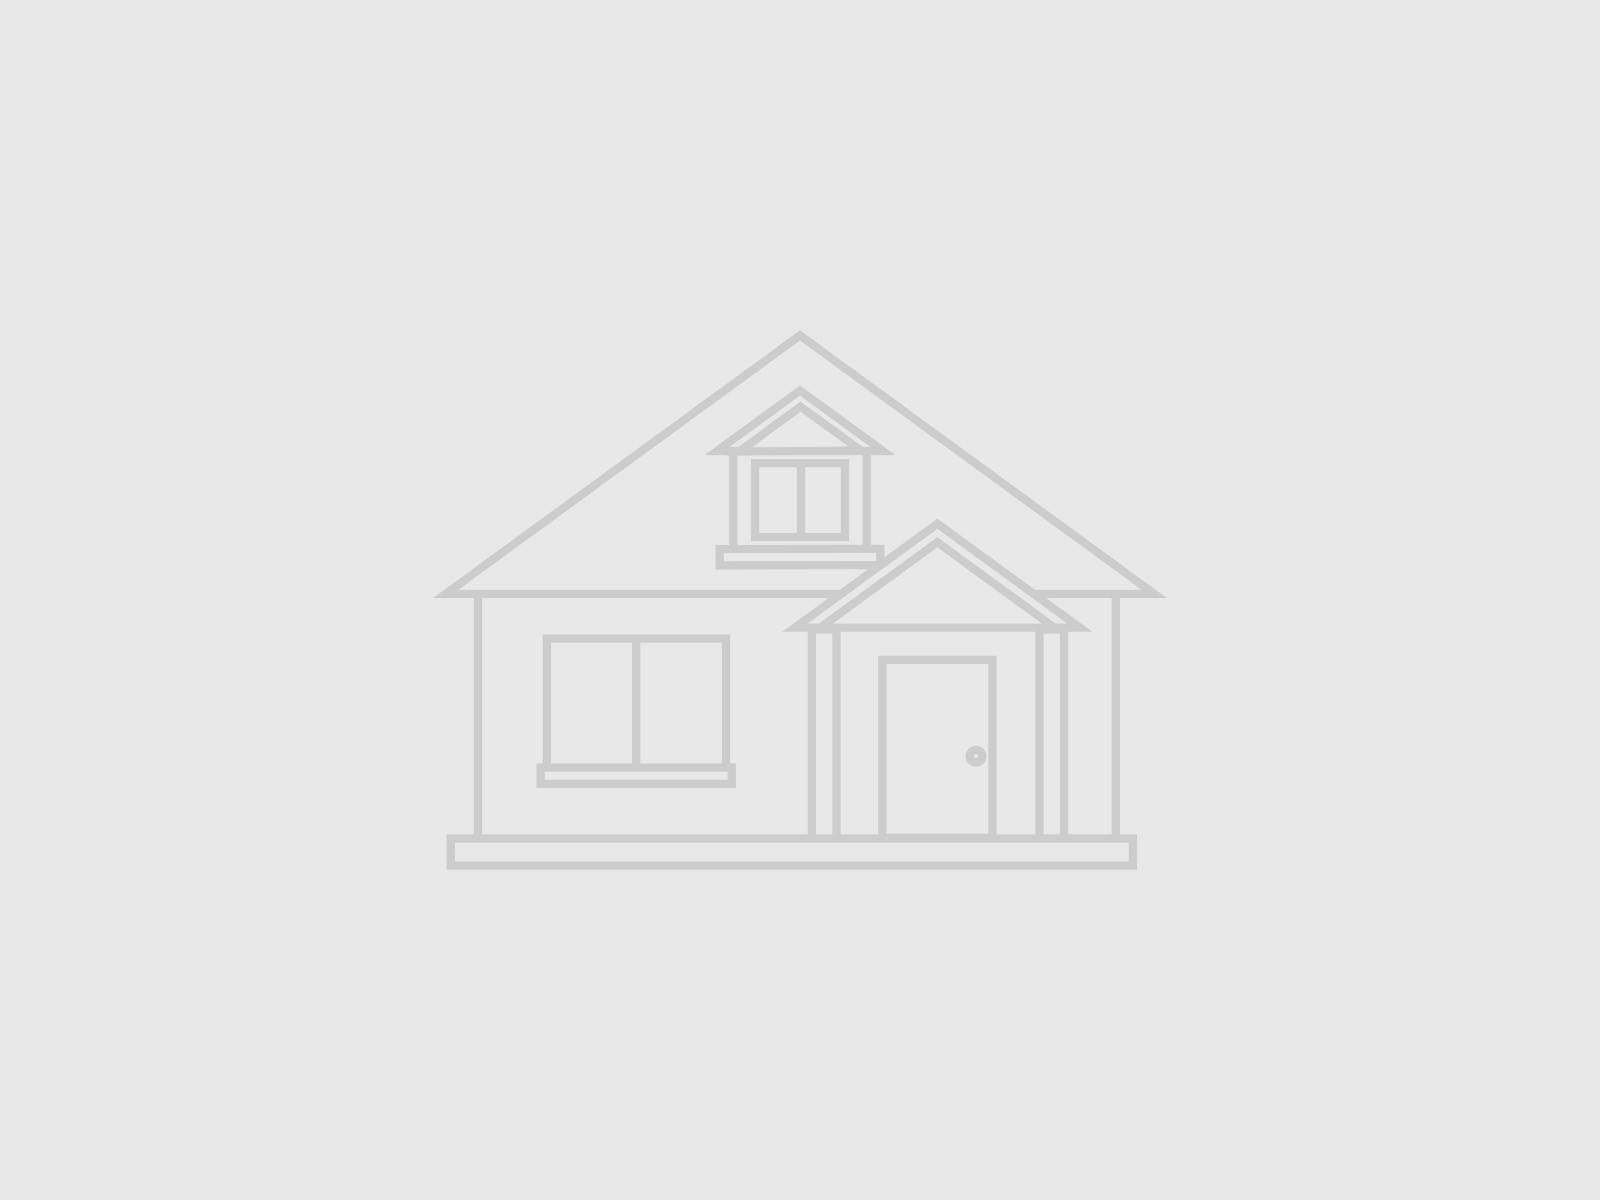 Single Family Homes for Sale at 815 Spring Drive Lindenhurst, Illinois 60046 United States